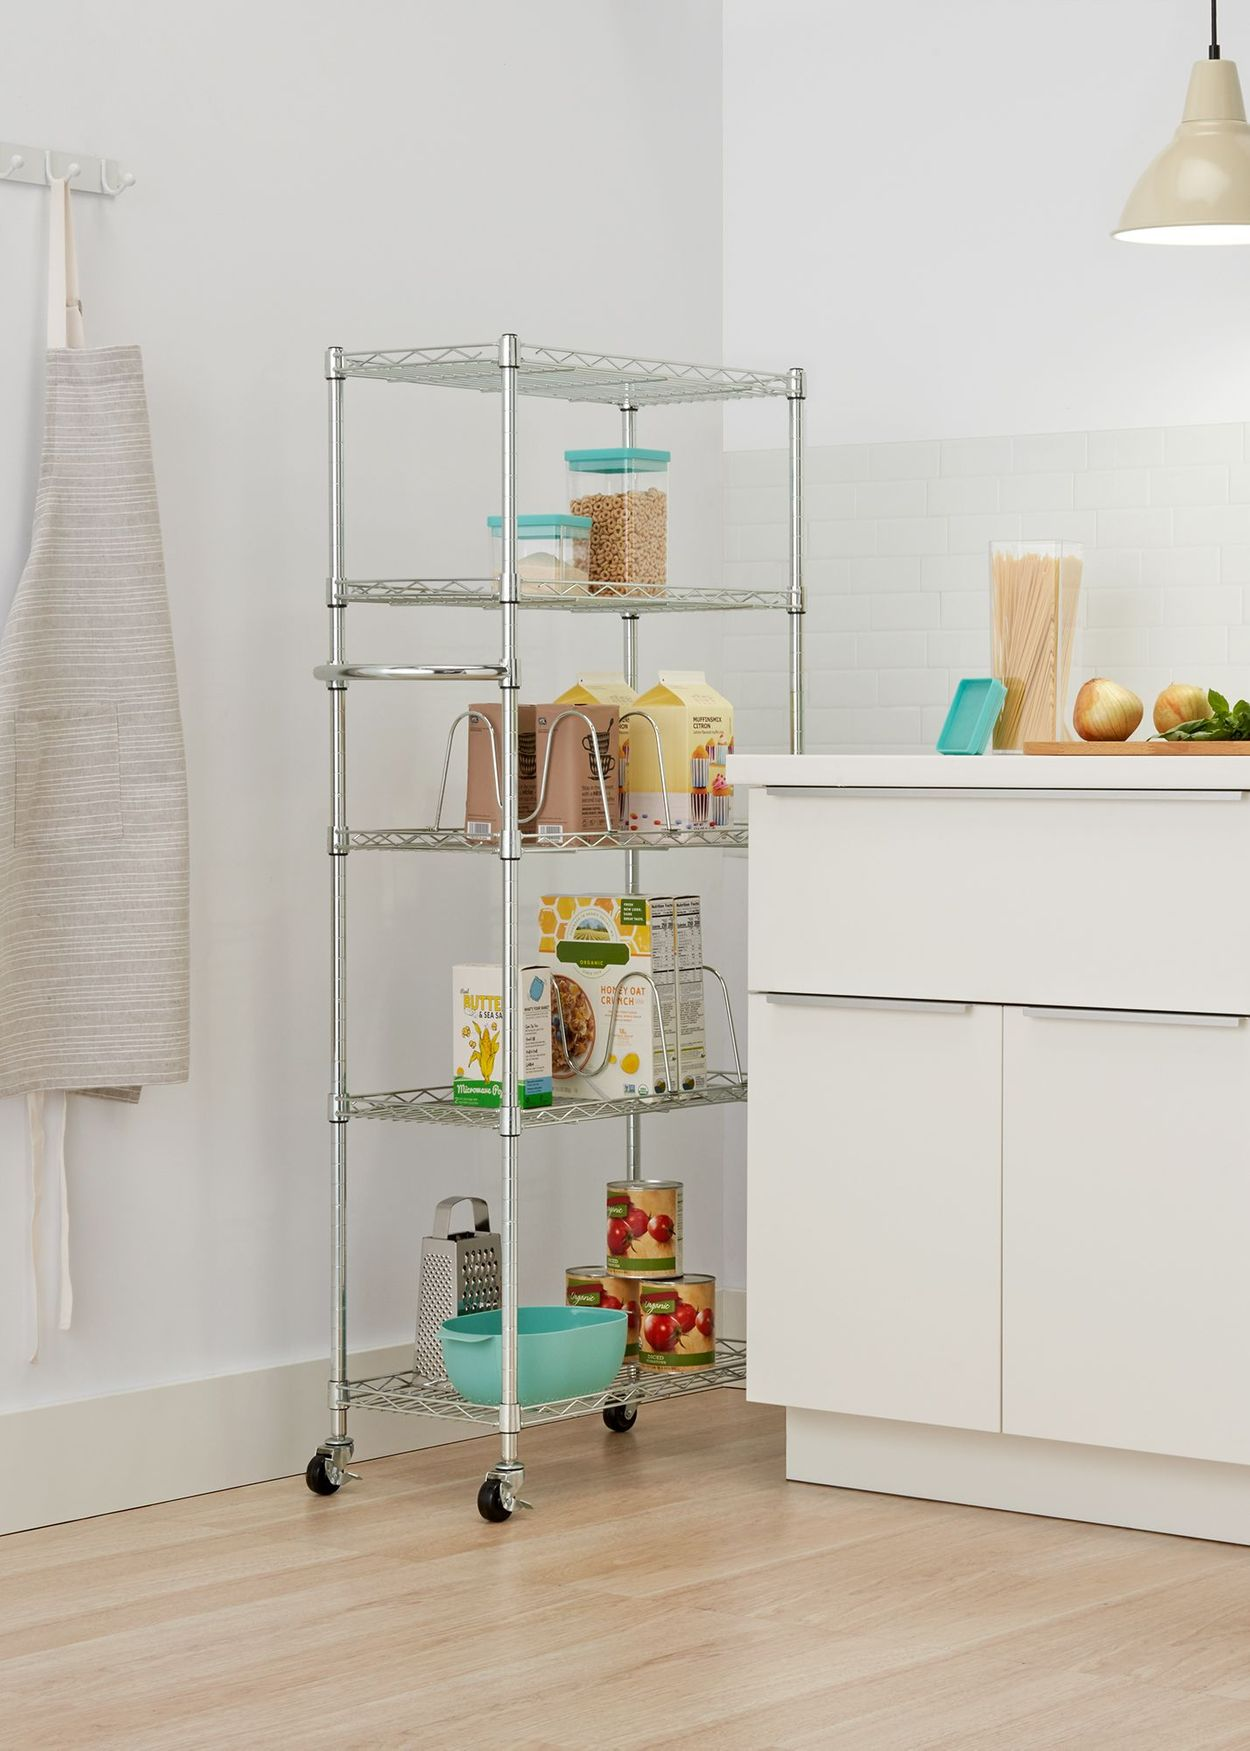 TRINITY Basics Pantry rack stored in between the wall and counters